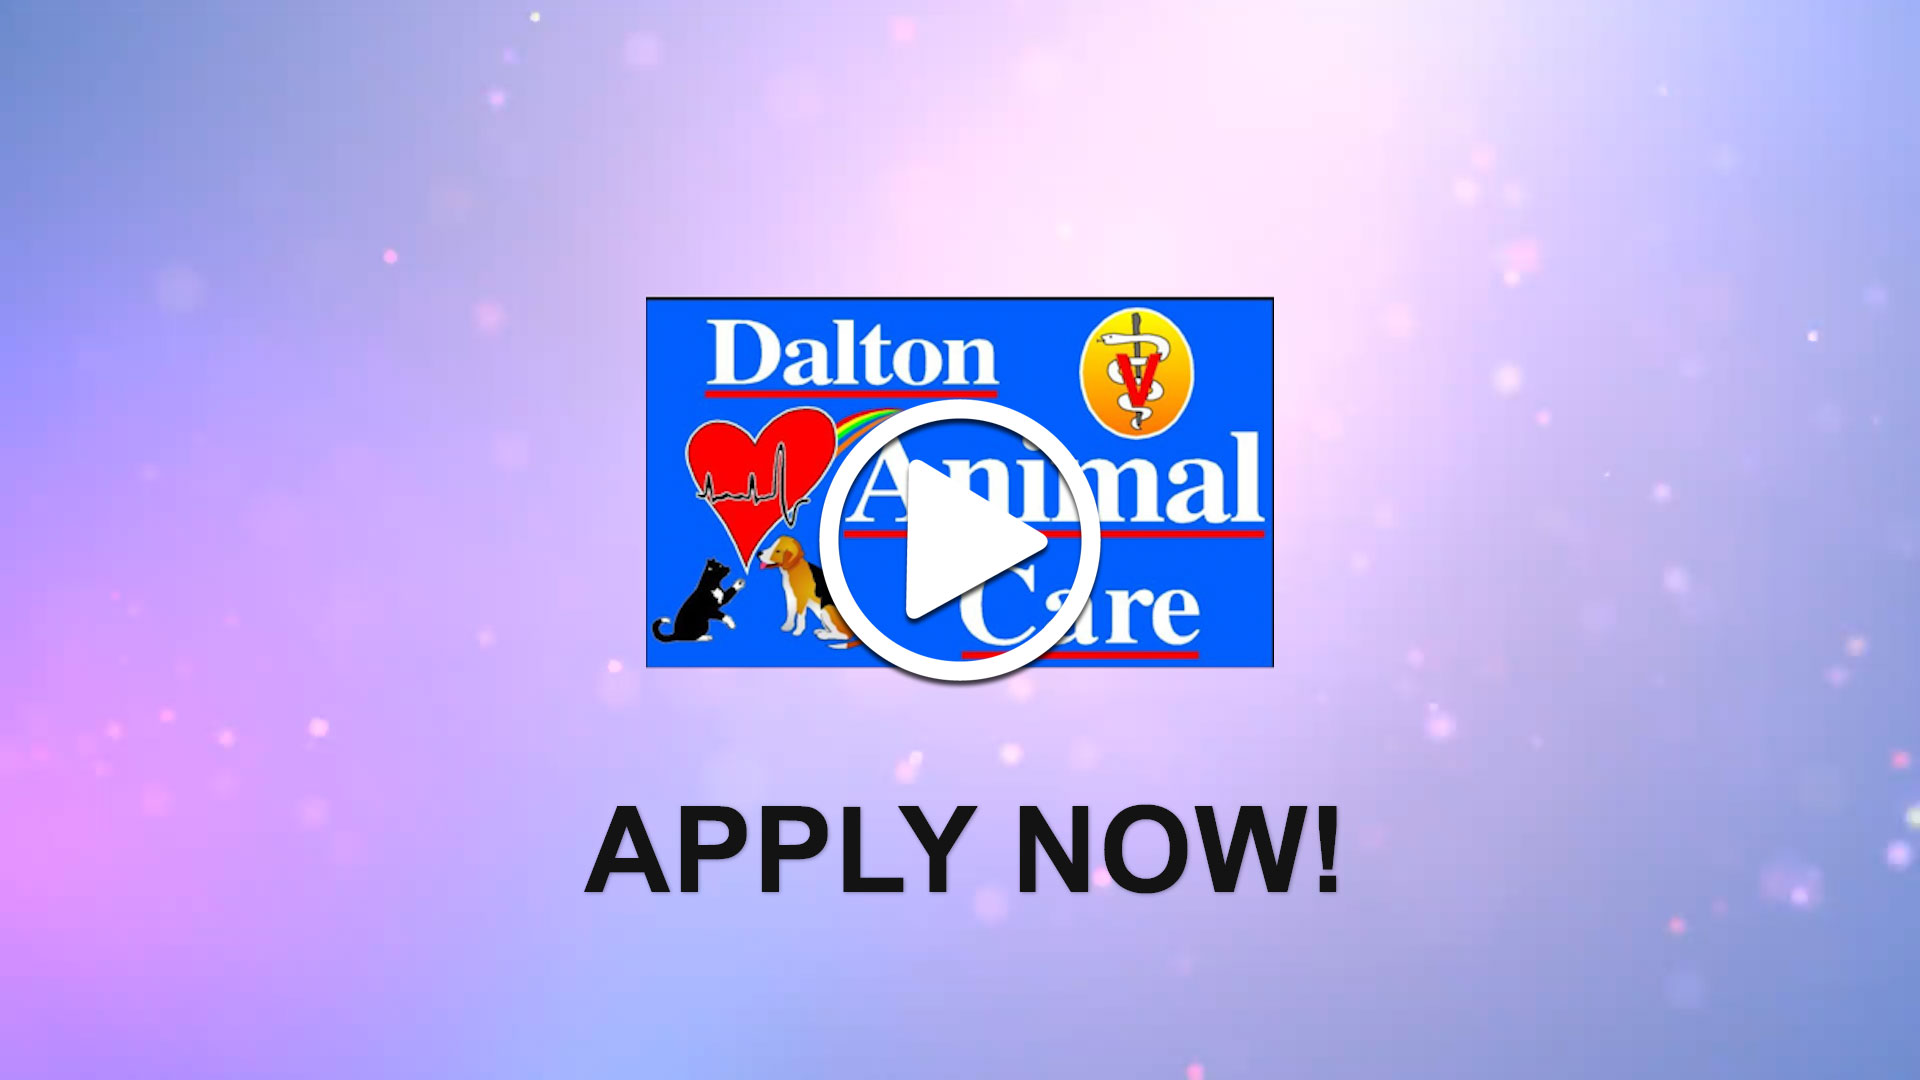 Watch our careers video for available job opening Associate Veterinarian in Dalton, GA, USA